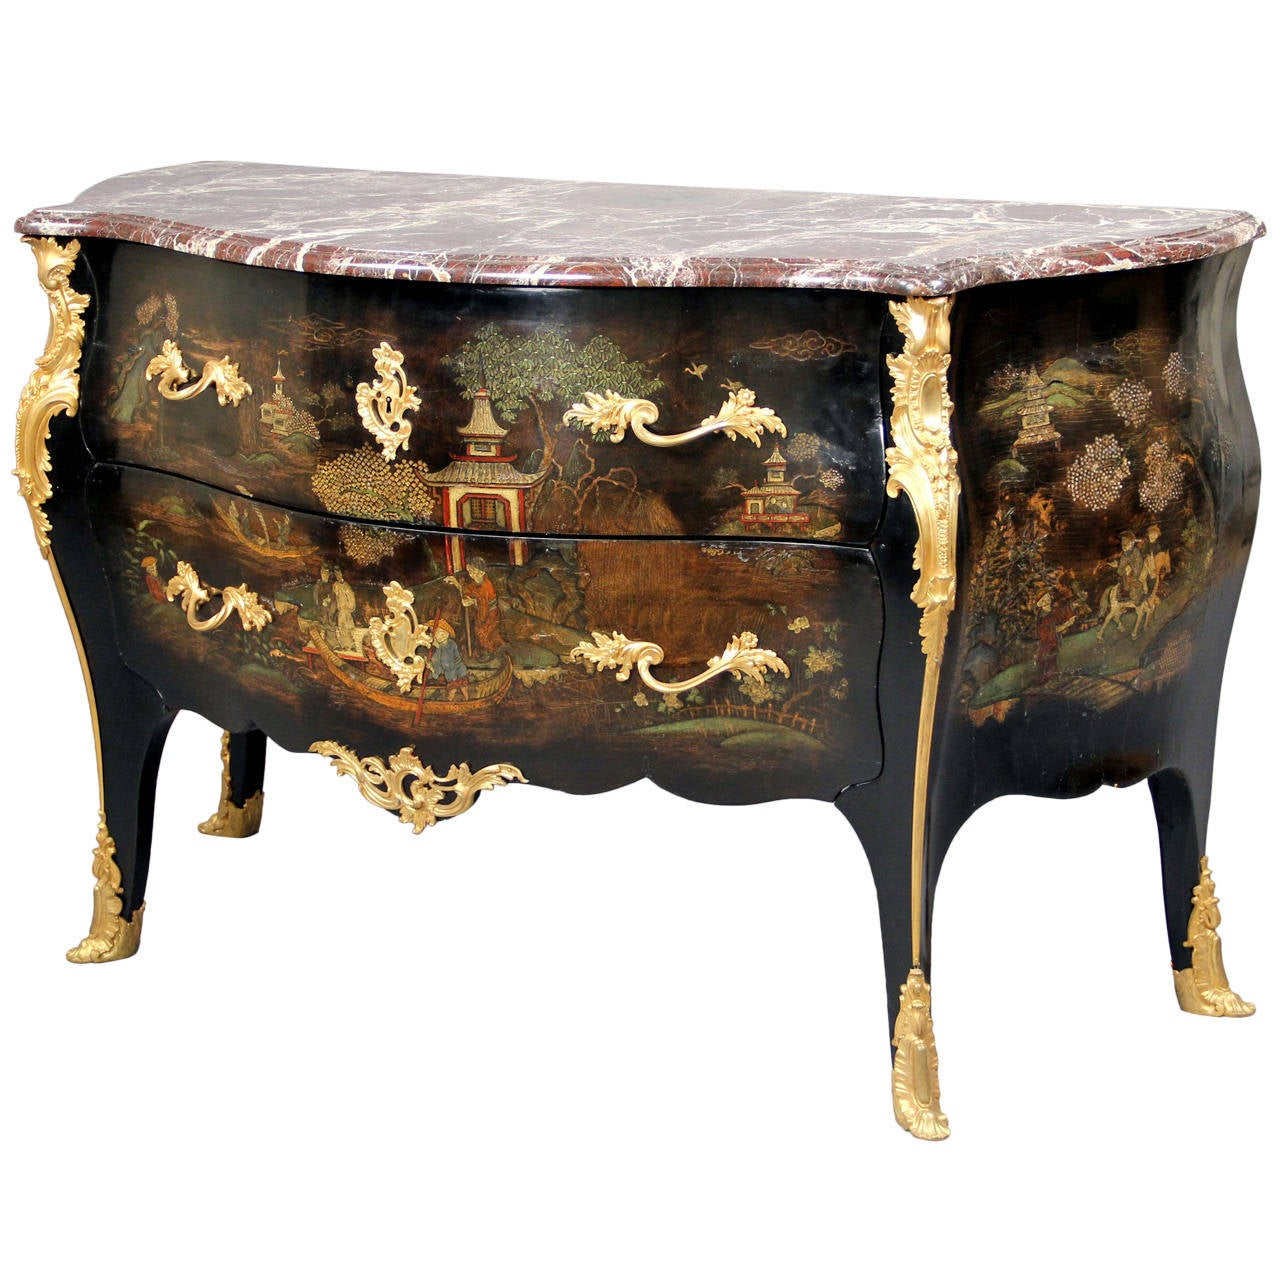 Exceptional Late 19th CenturyGilt Bronze-Mounted Lacquer Commode by Henry Dasson For Sale